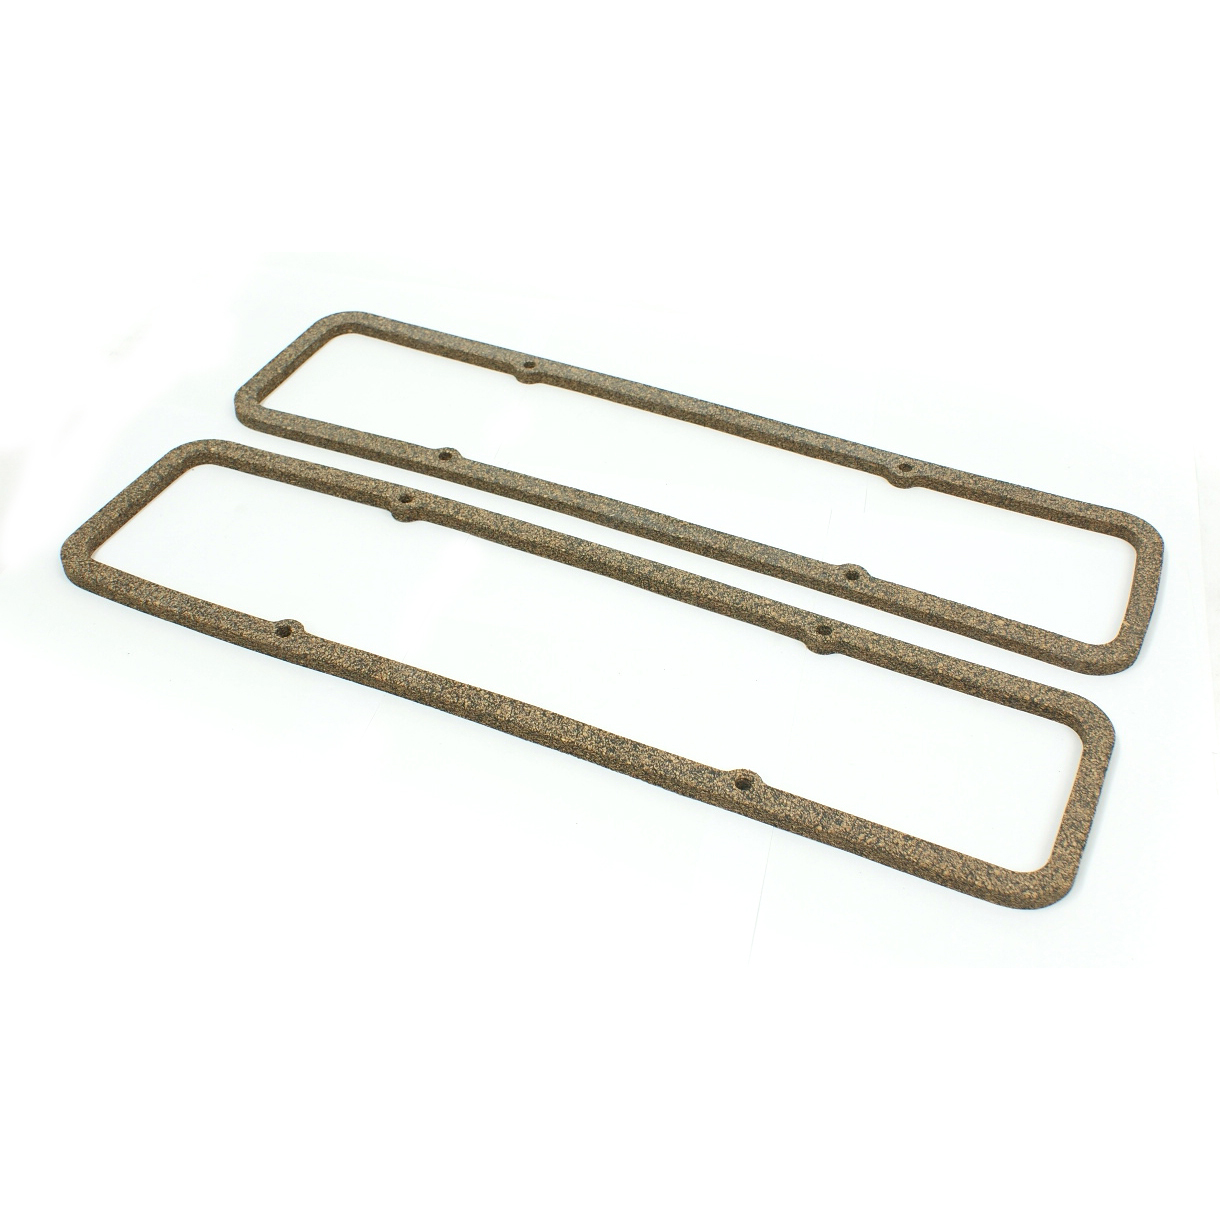 Chevy SBC 350 1955-85 Cork Valve Cover Gasket Set